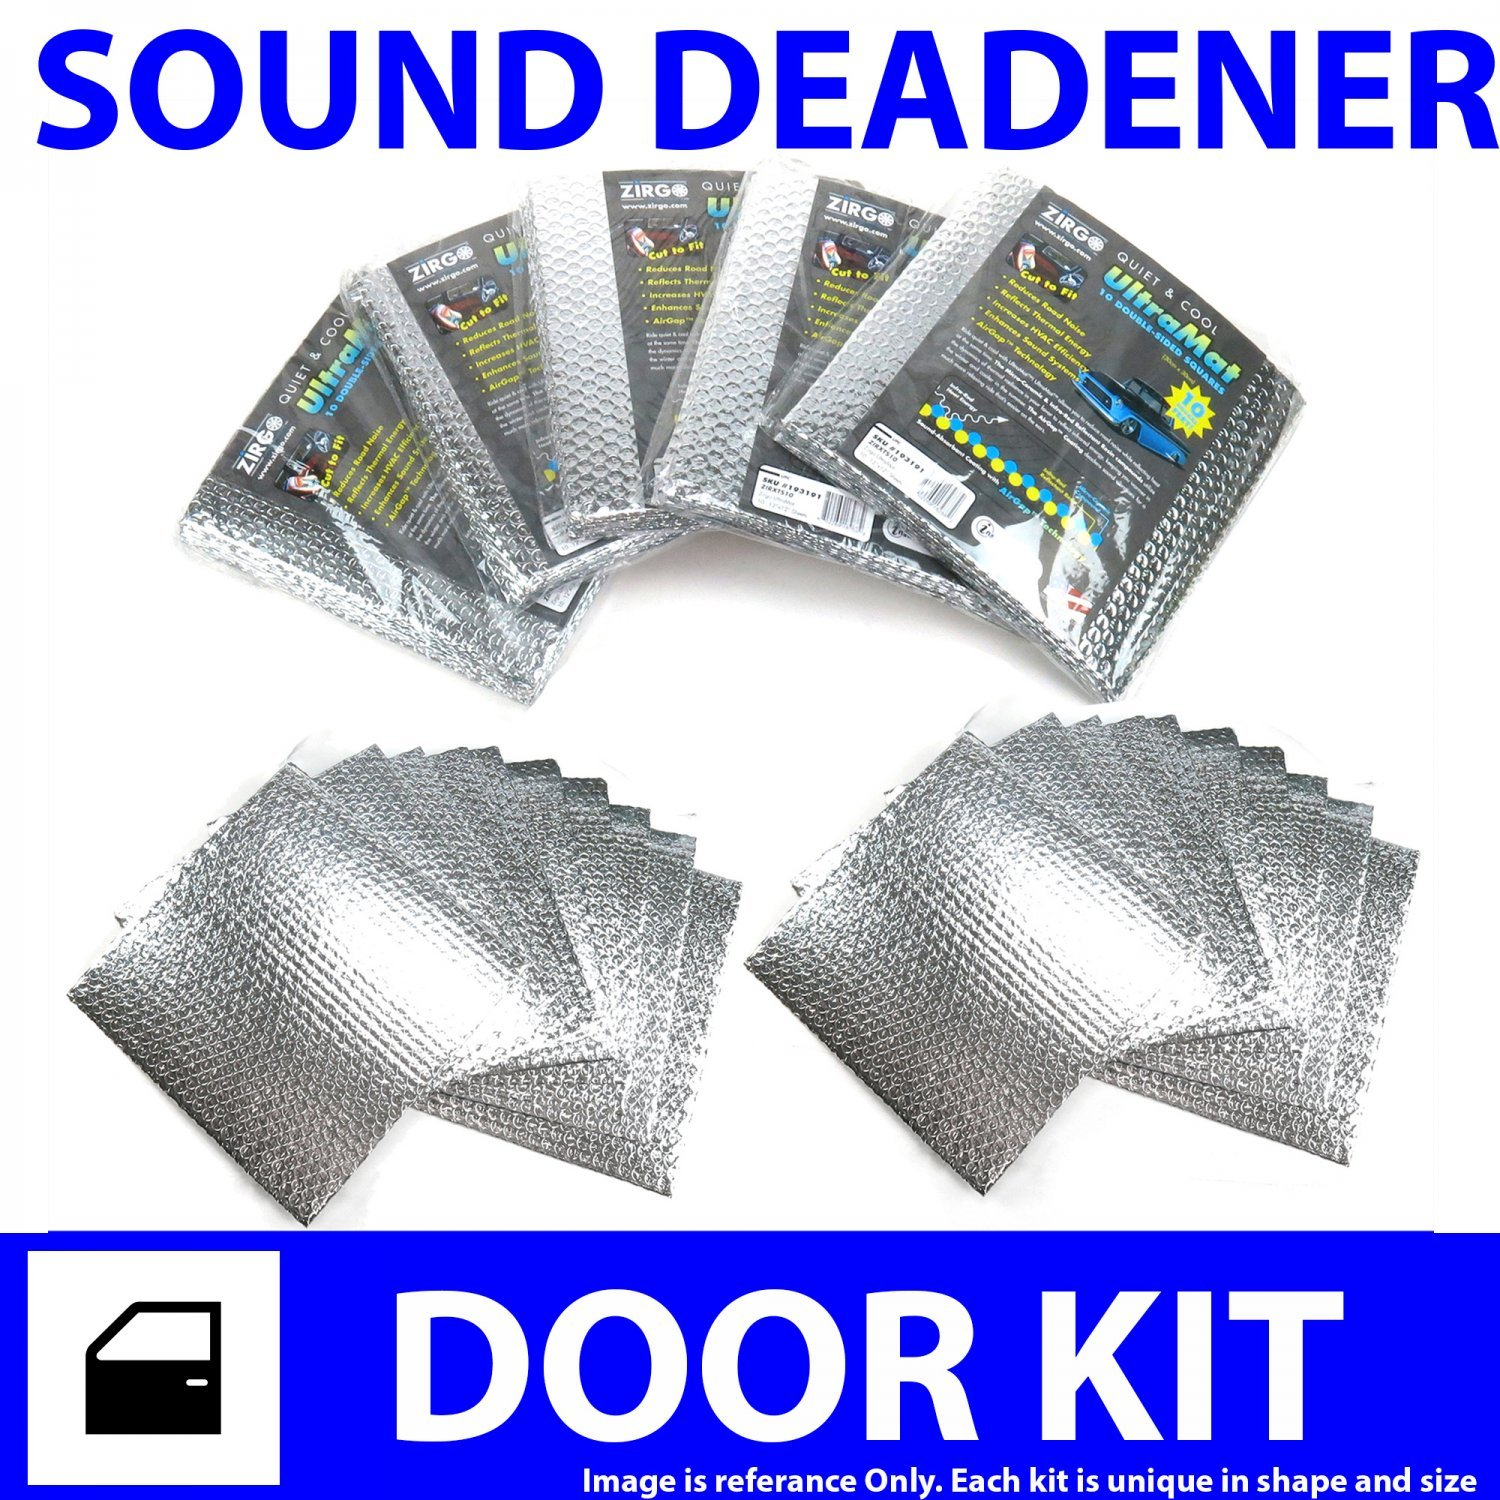 Zirgo 313854 Heat and Sound Deadener for 89-06 Mercedes ~ 2 Door Kit